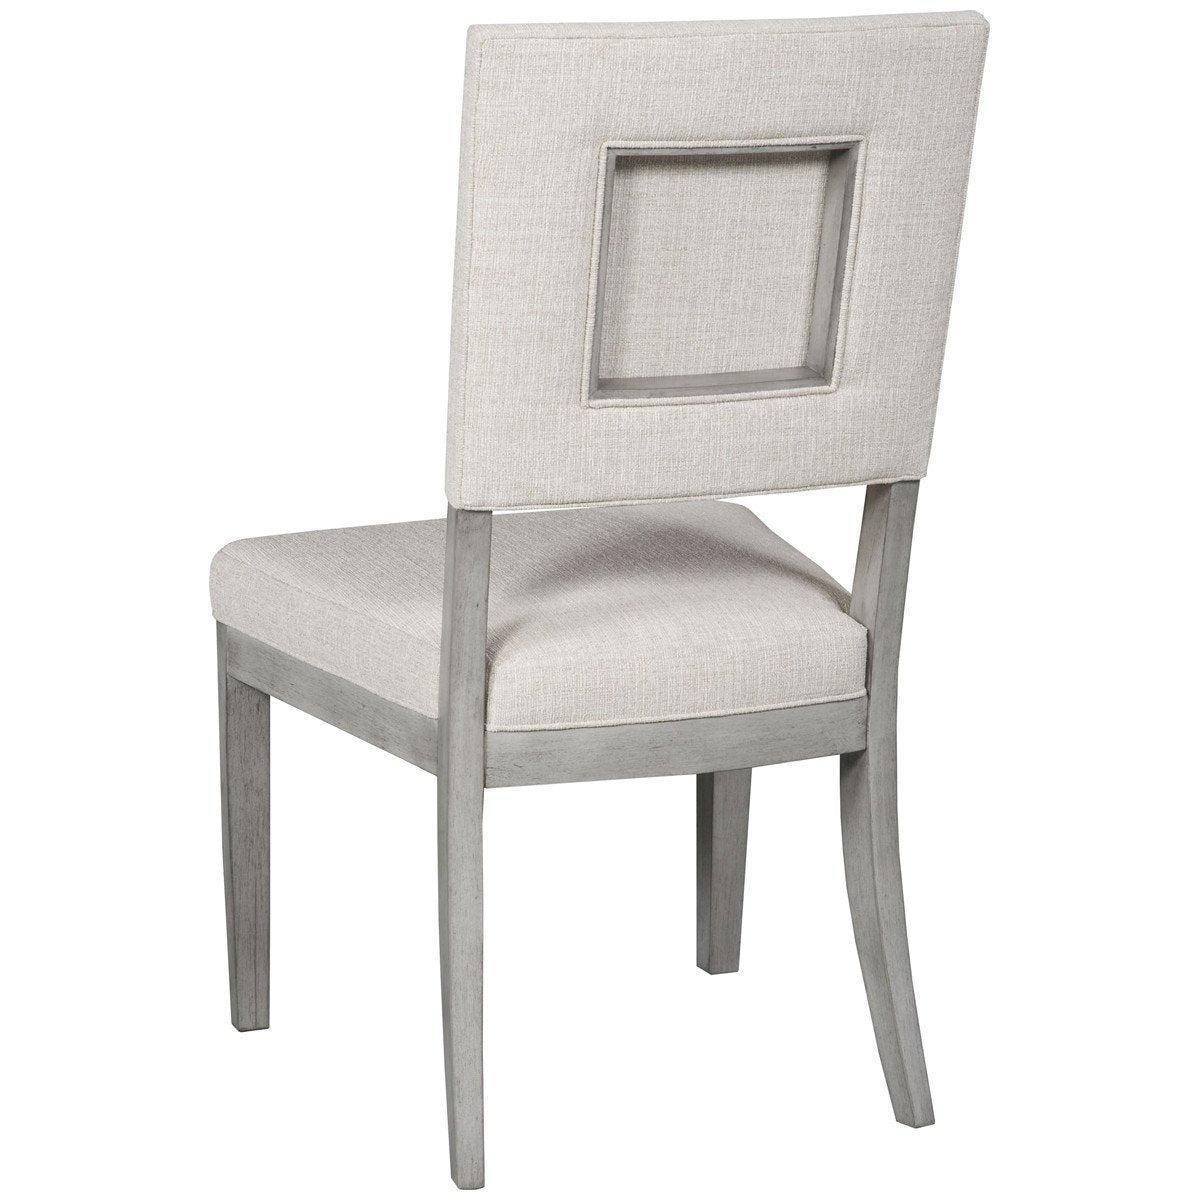 Vanguard Furniture Juliet Stocked Dining Side Chair